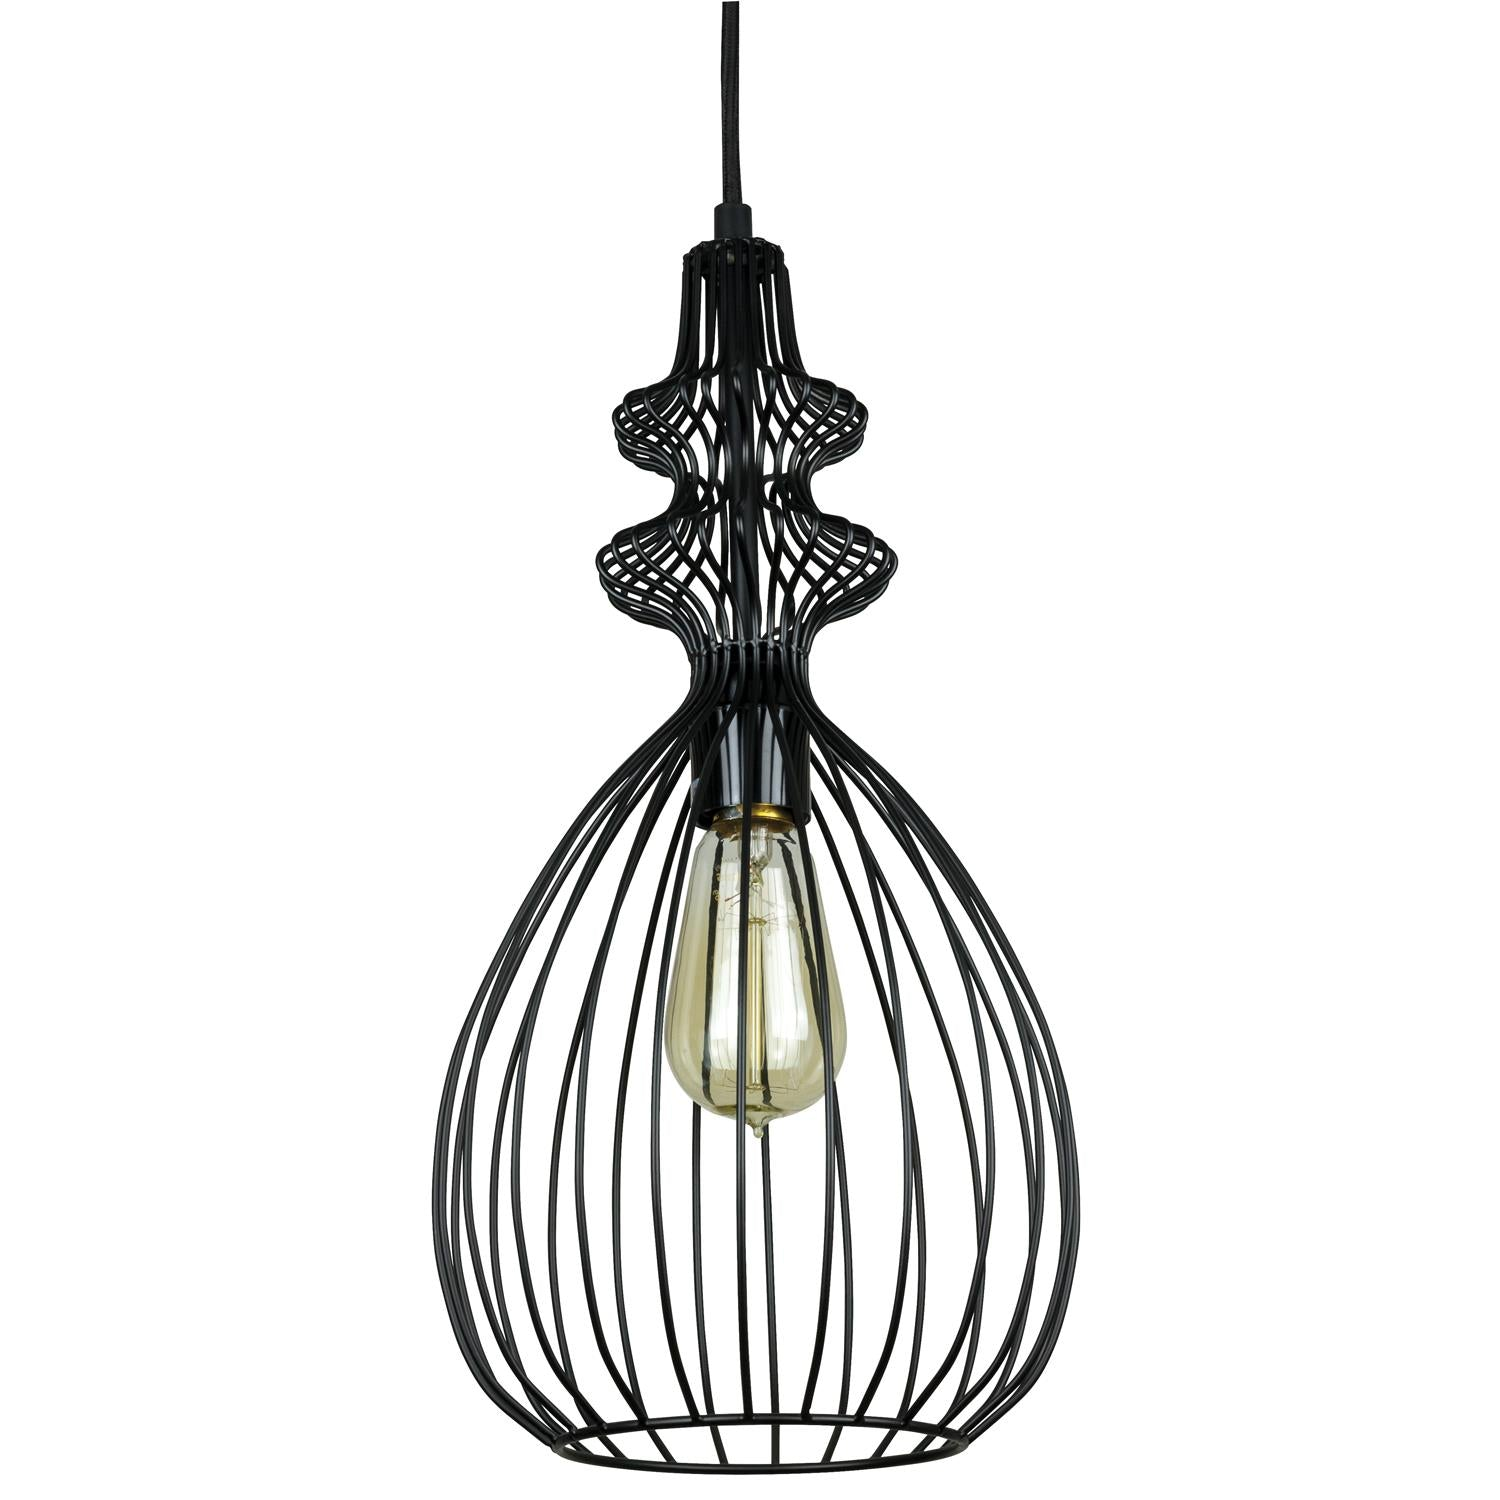 SUNLITE E26 Oval Cage Antique Bronze Pendant Light Fixture